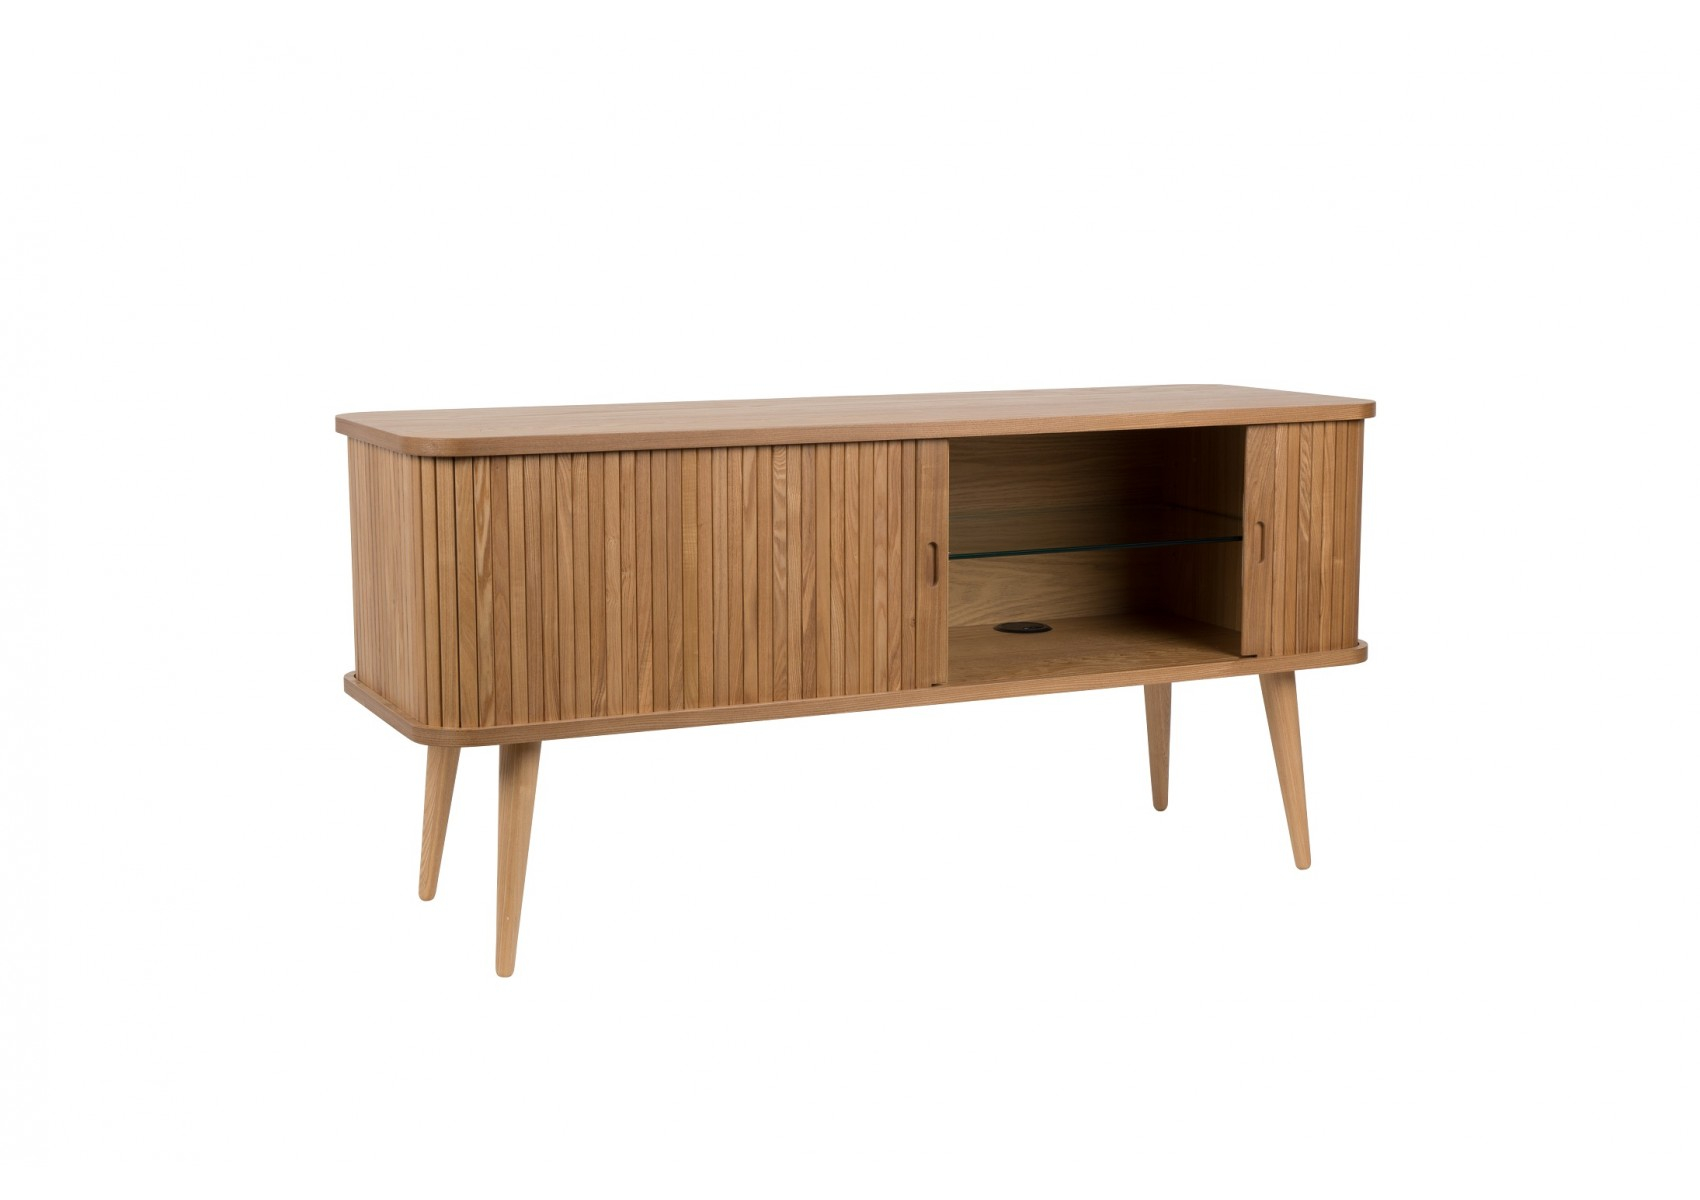 Buffet En Bois Au Design Scandinave Sideboard Barbier Par Zuiver # Meuble Tv Frene